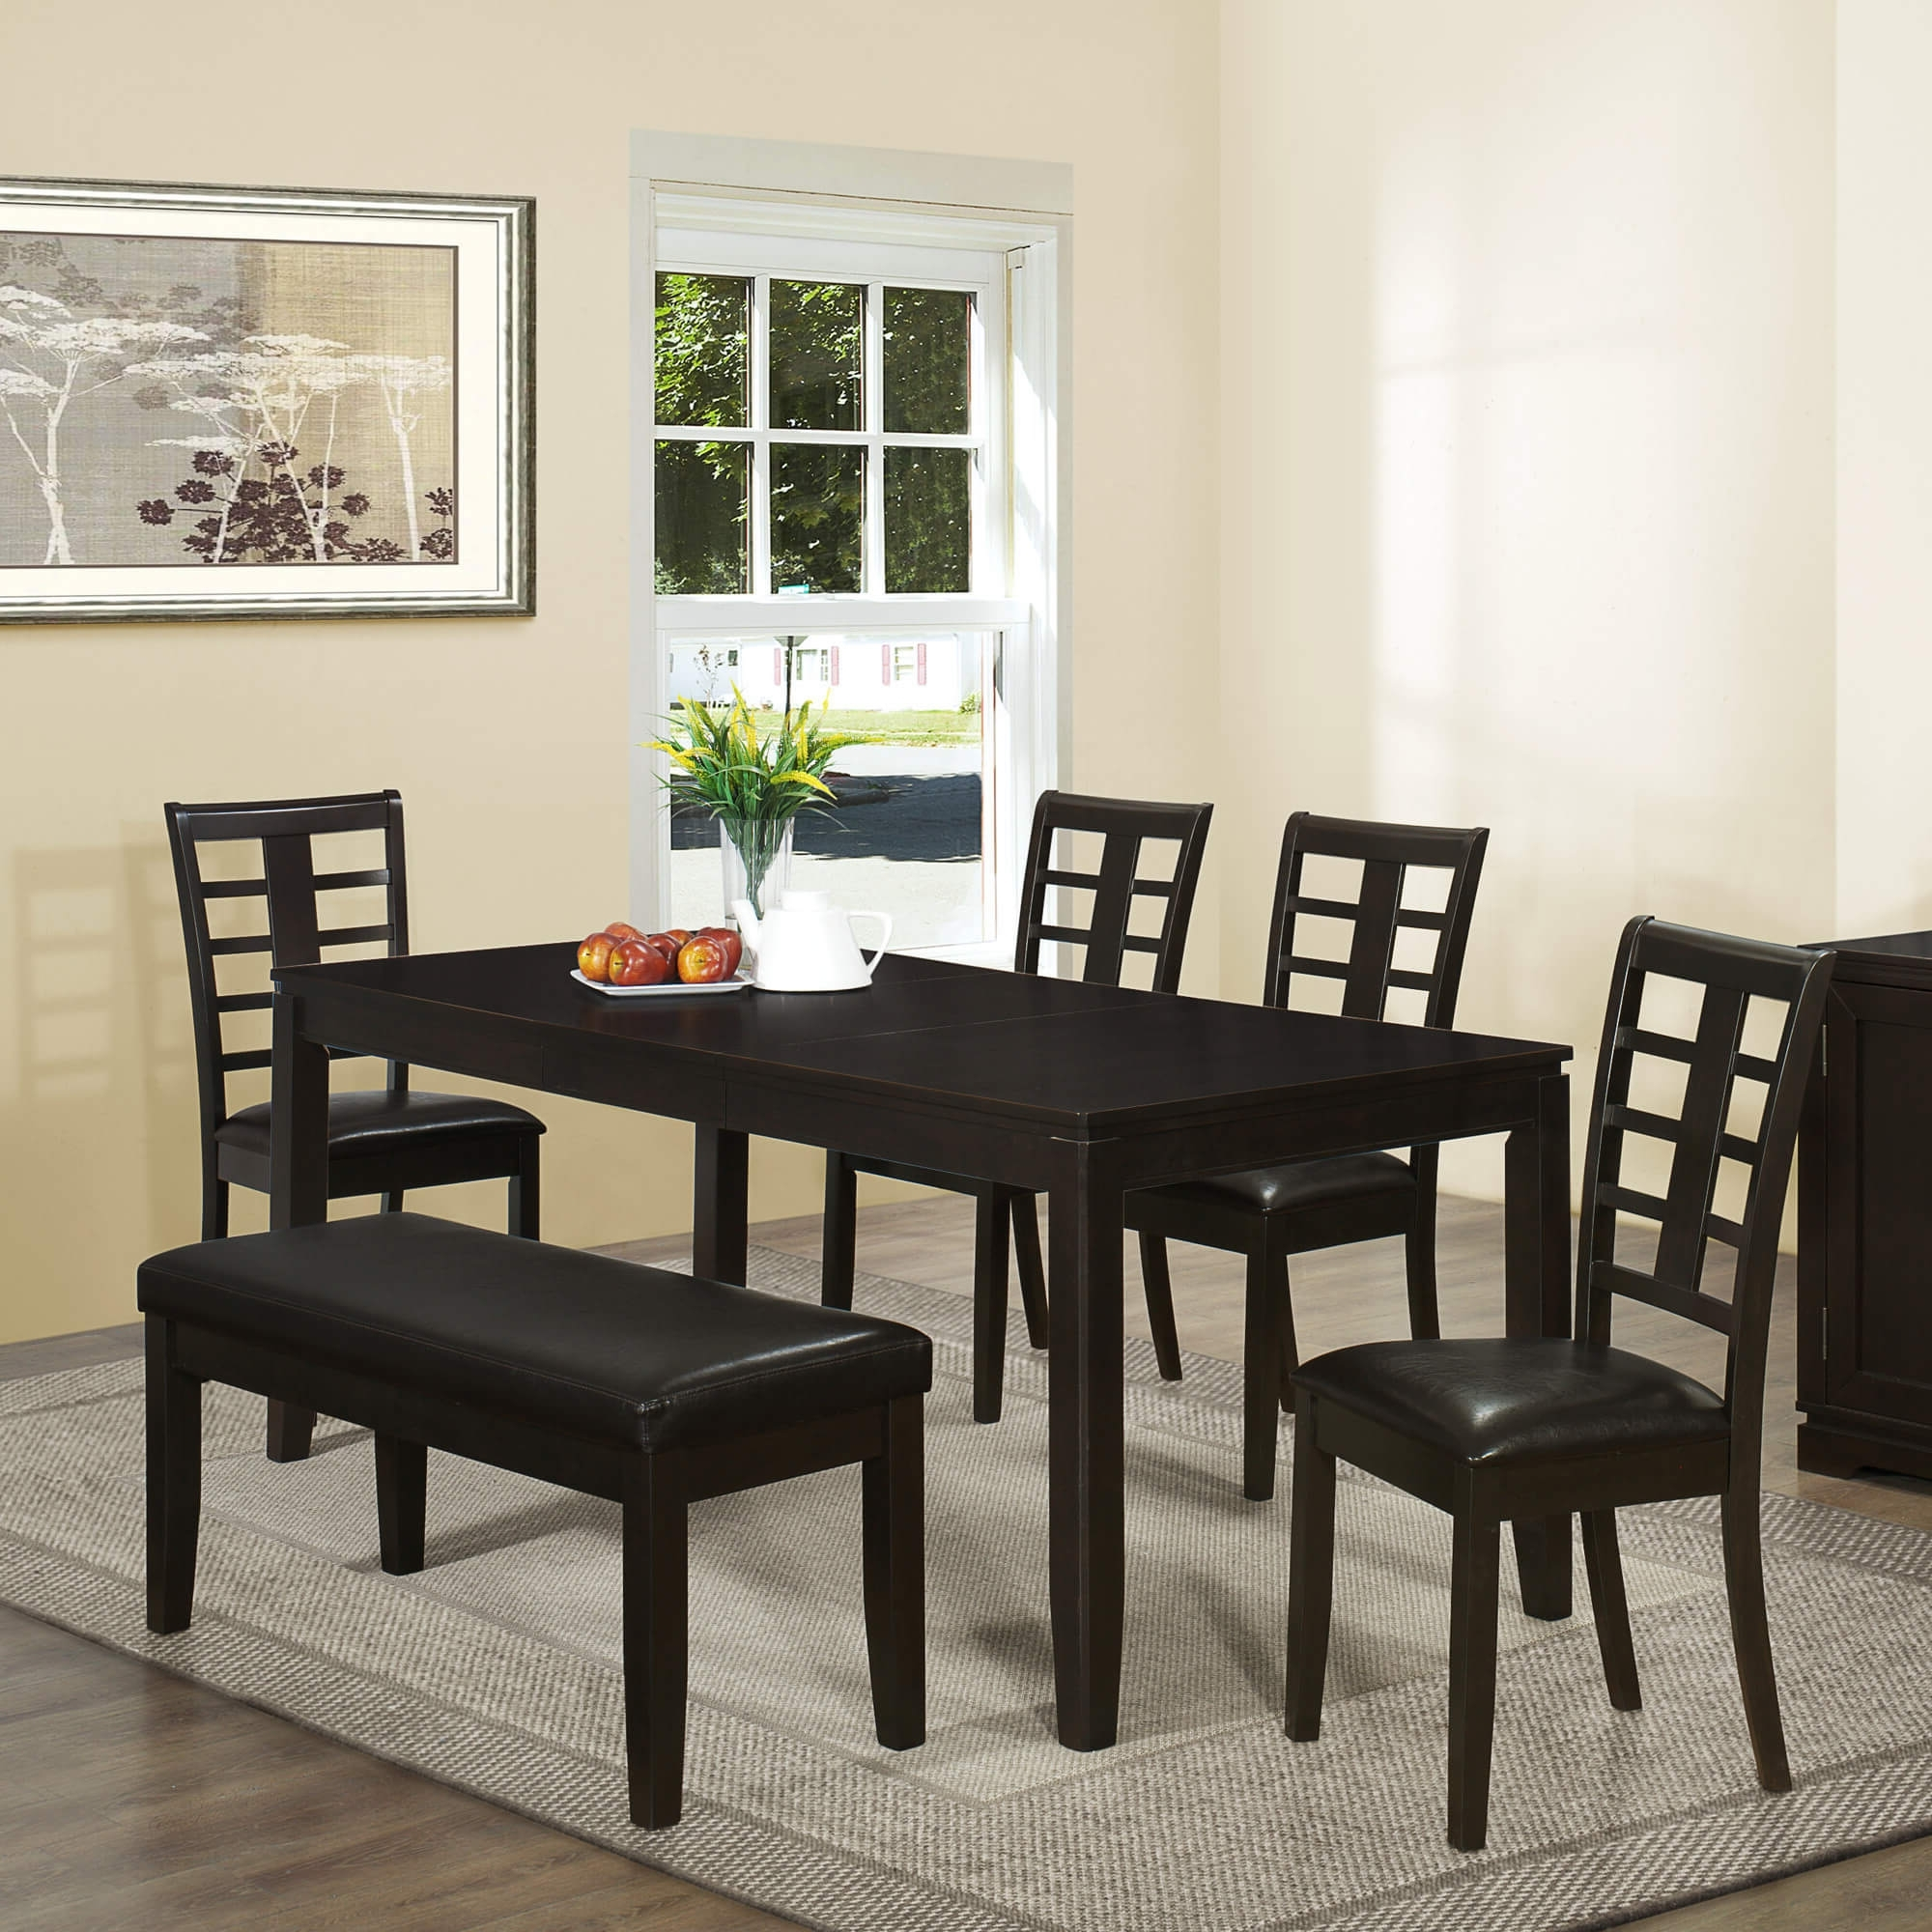 26 Dining Room Sets (Big And Small) With Bench Seating (2018) pertaining to Well known Black Wood Dining Tables Sets